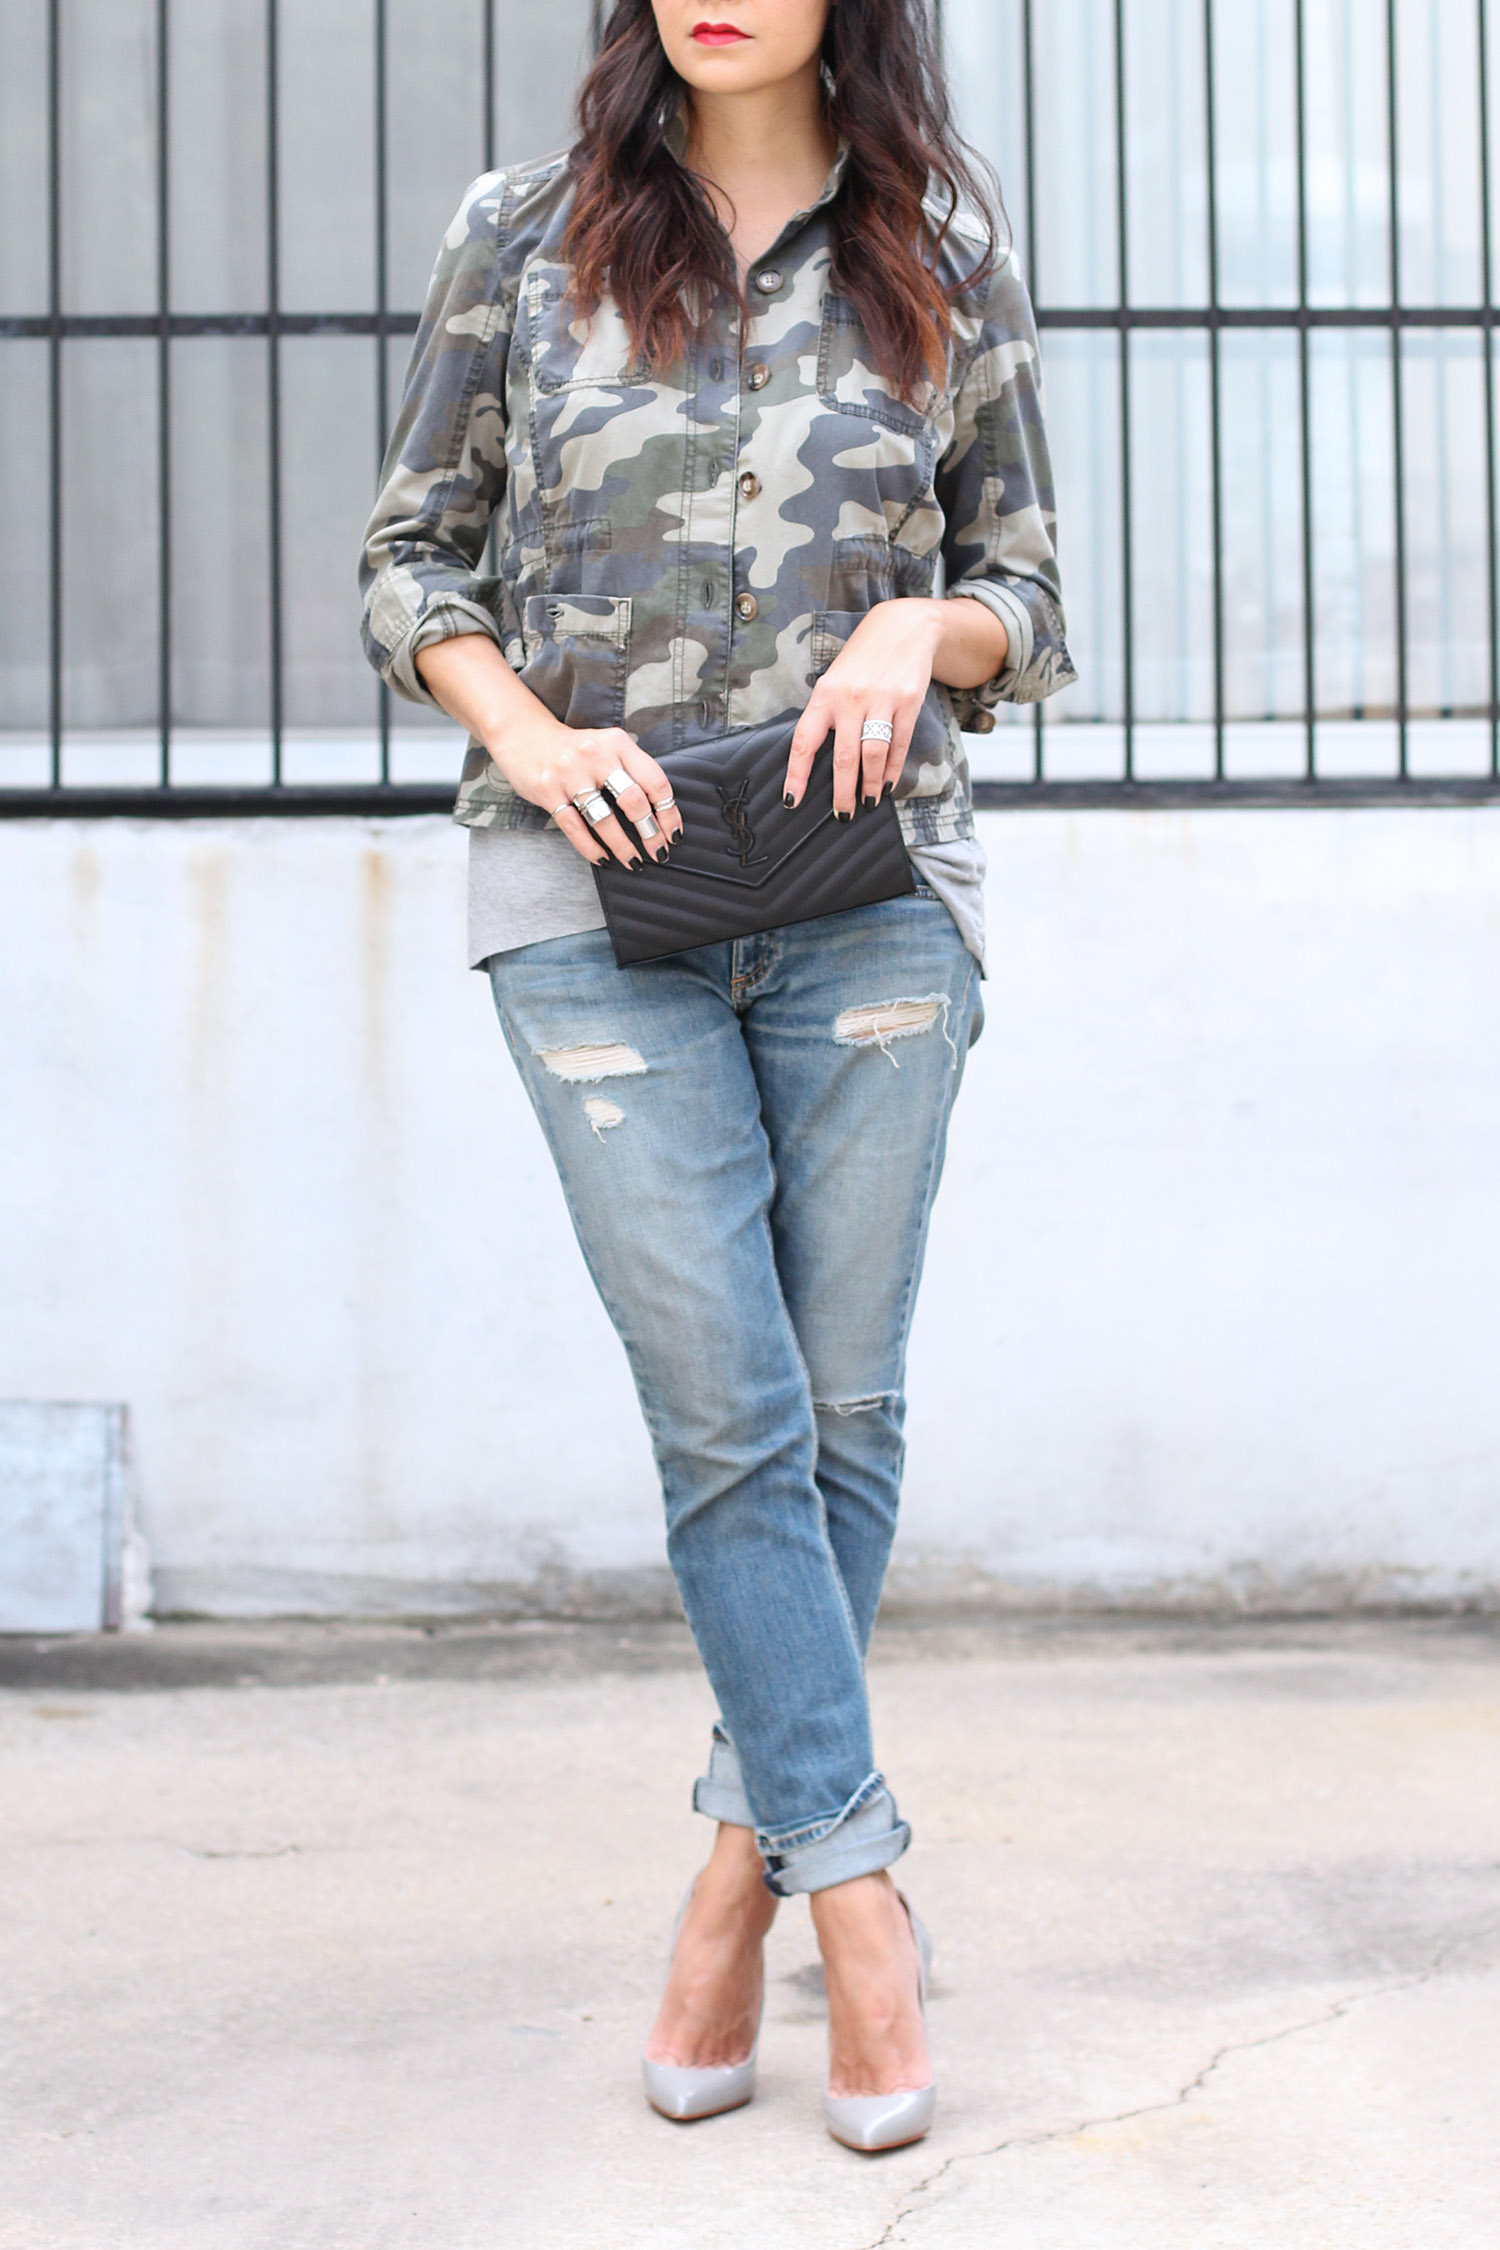 How to Style a Camo Shirt